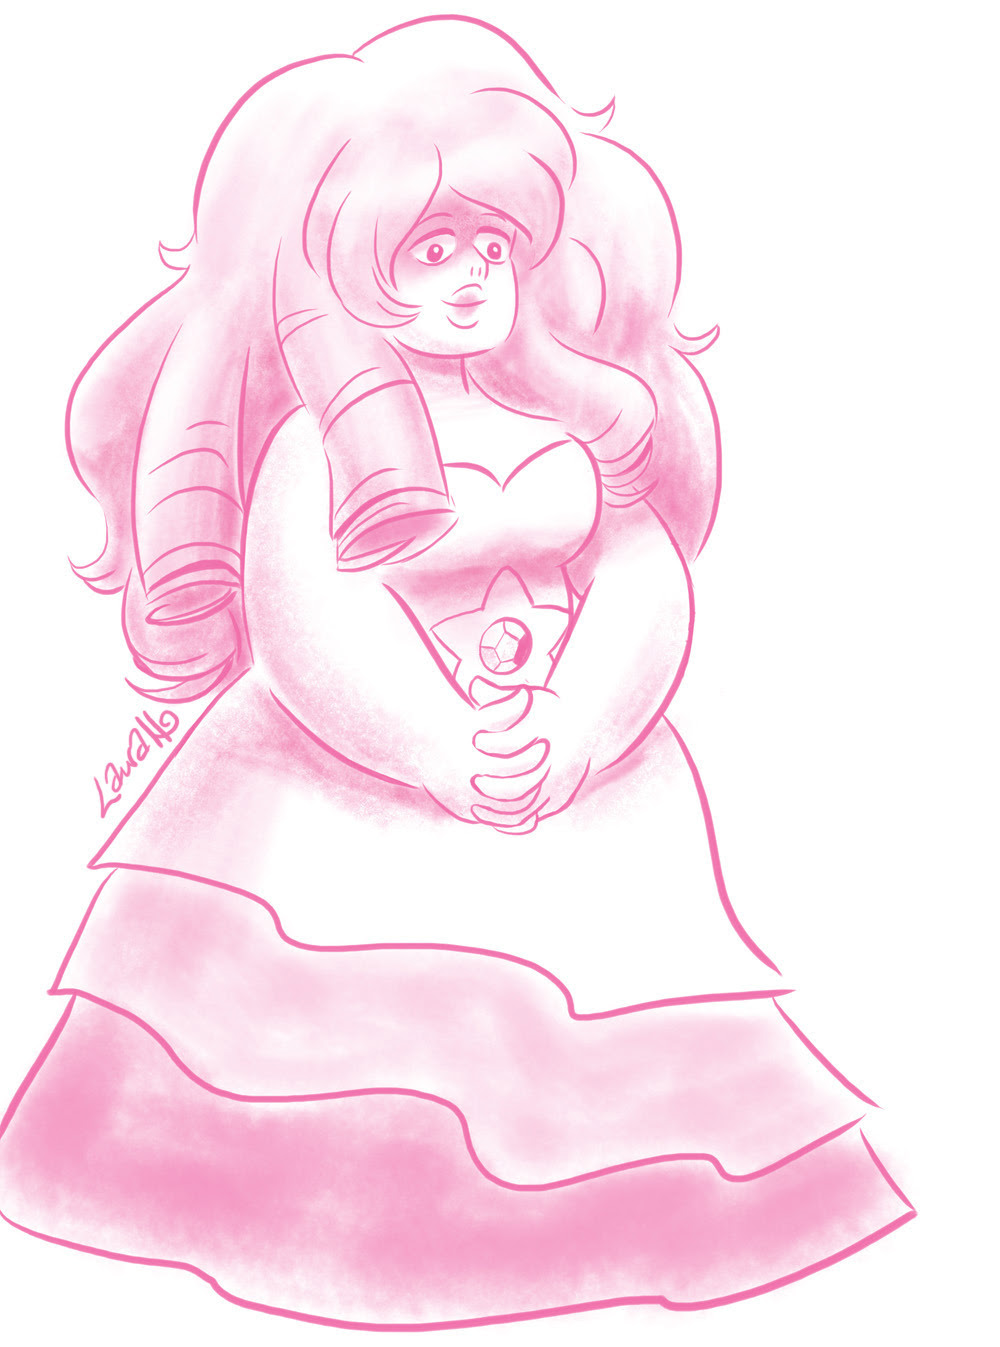 Very little time for sketching lately owing to crazy work-type deadlines, but I'll always try to squeeze in a #StevenUniverse when I'm in the mood